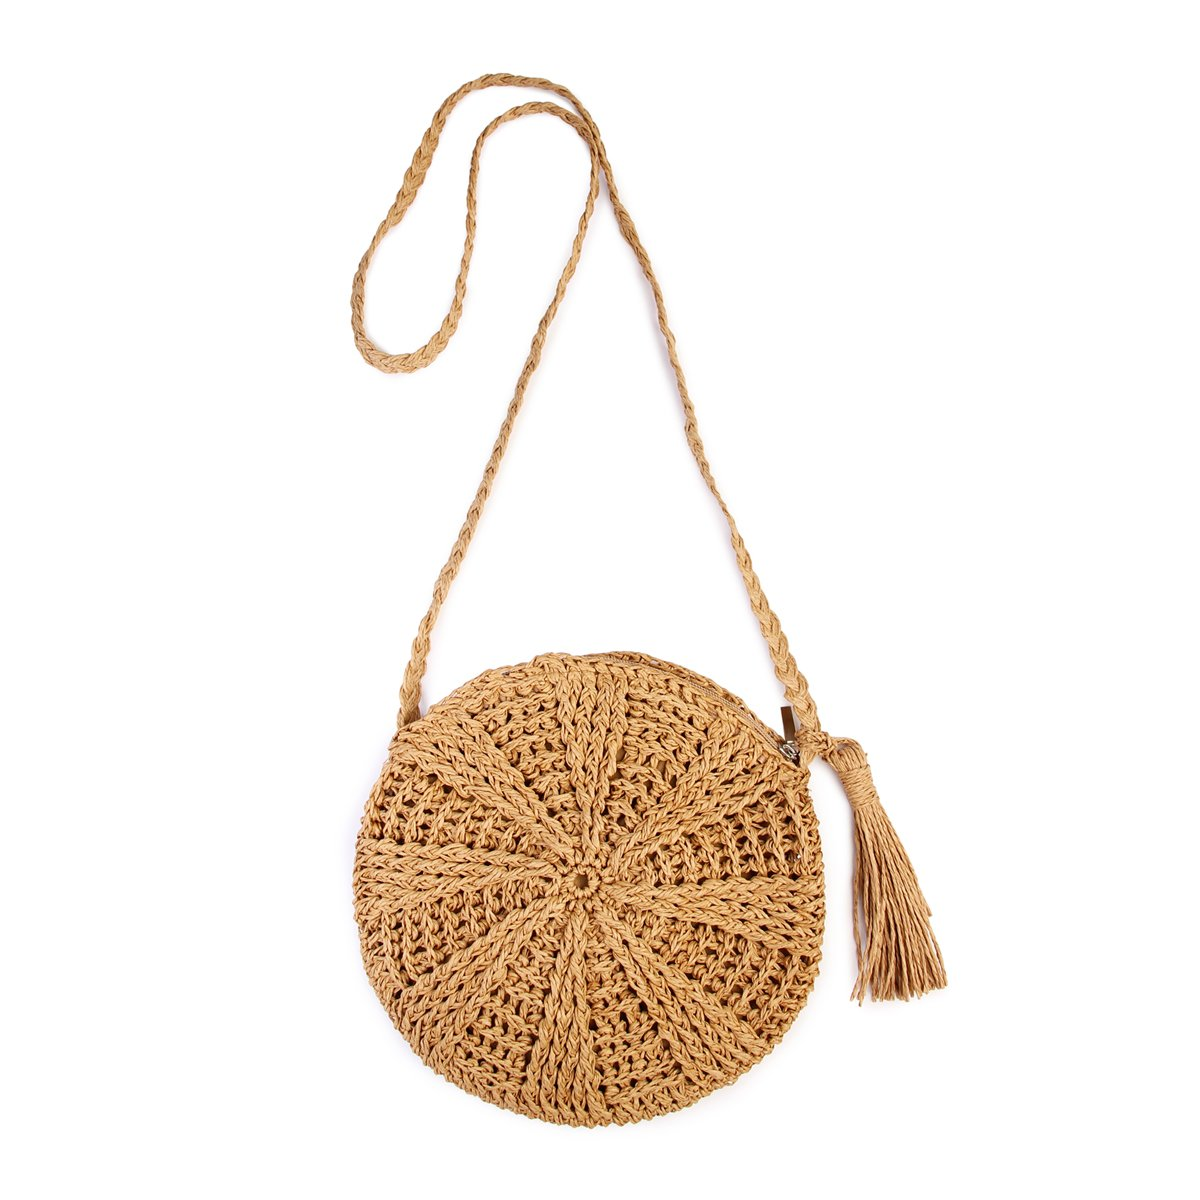 FGGS-Rattan Crochet Straw Woven Basket Bali Handbag Round Circle Crossbody Shopper Beach Tote Bag